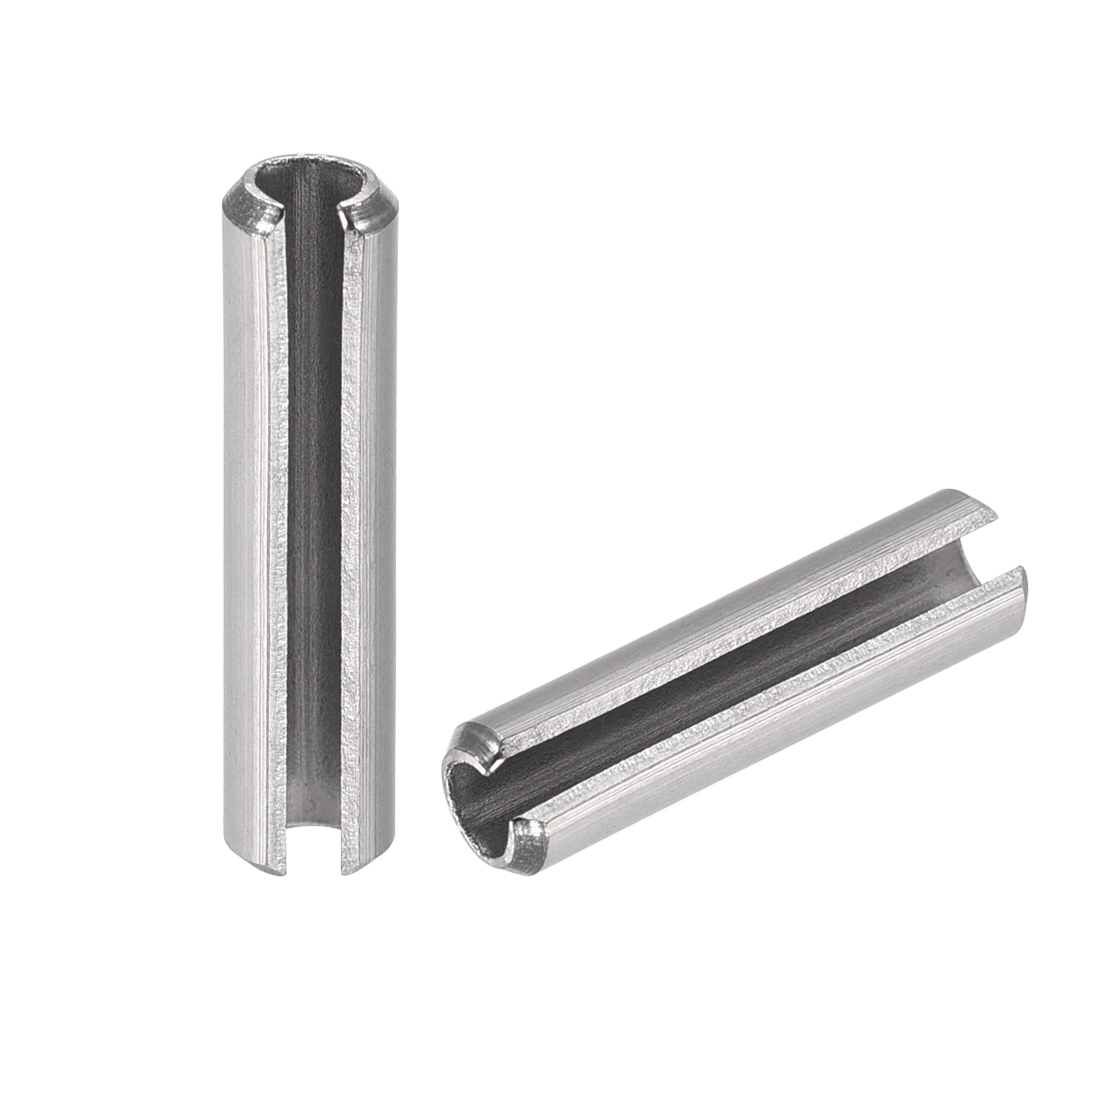 M8 x 40mm 304 Stainless Steel Split Spring Roll Dowel Pins Plain Finish 10Pcs uxcell Slotted Spring Pin